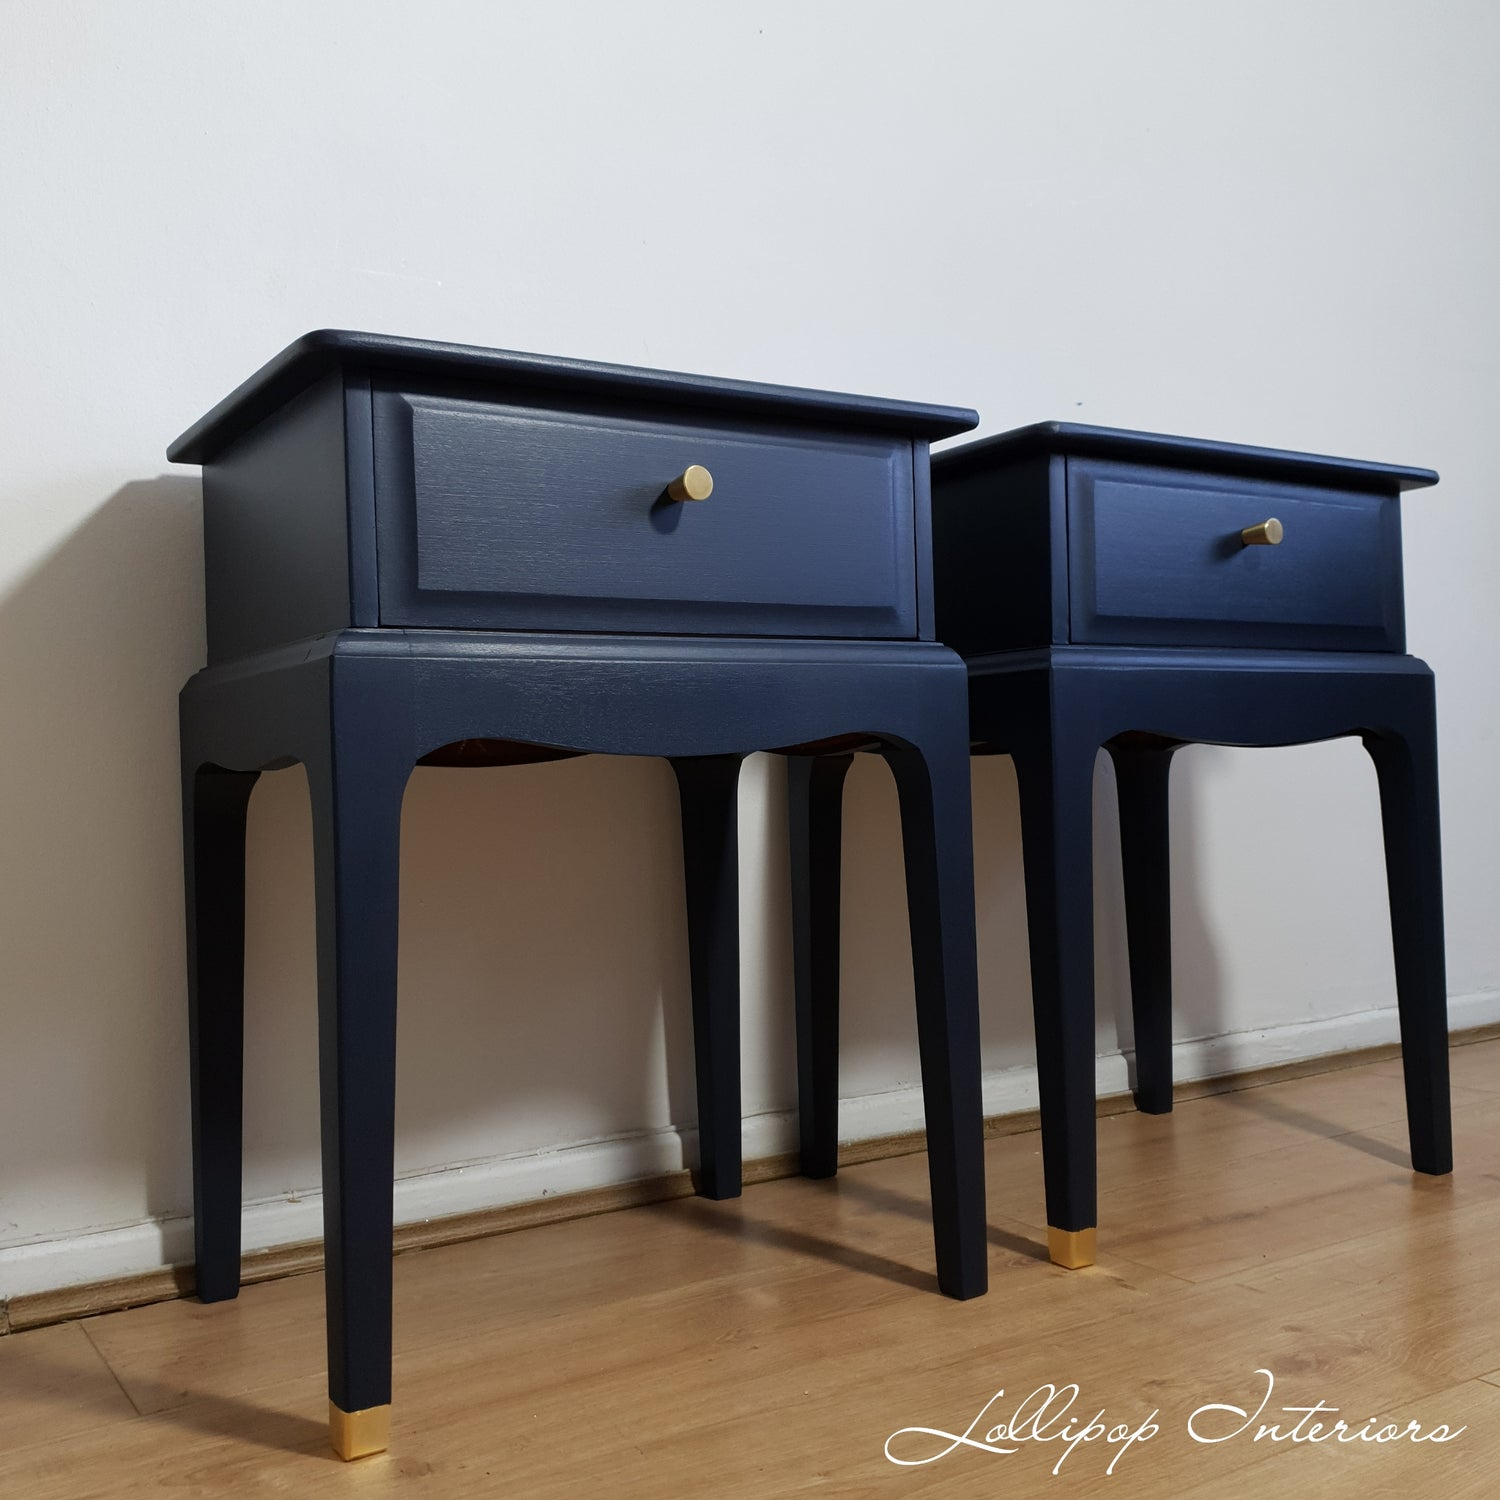 Image of Navy stag bedside tables with brass cone handles